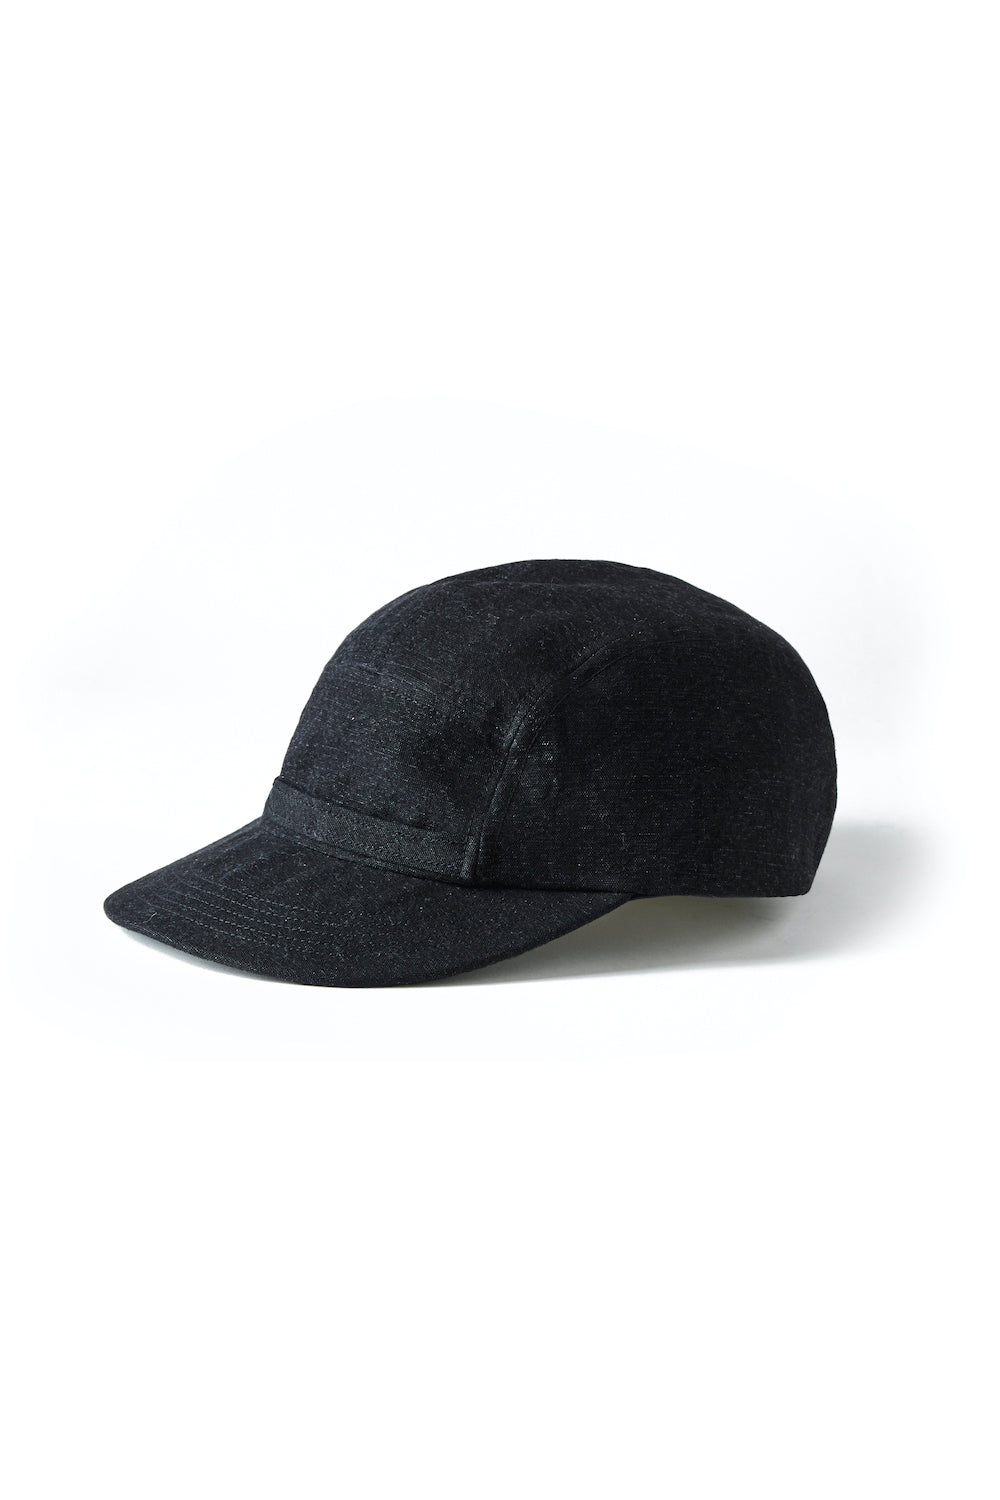 FRONT BELTED WORK CAP - 211OJ-HT02